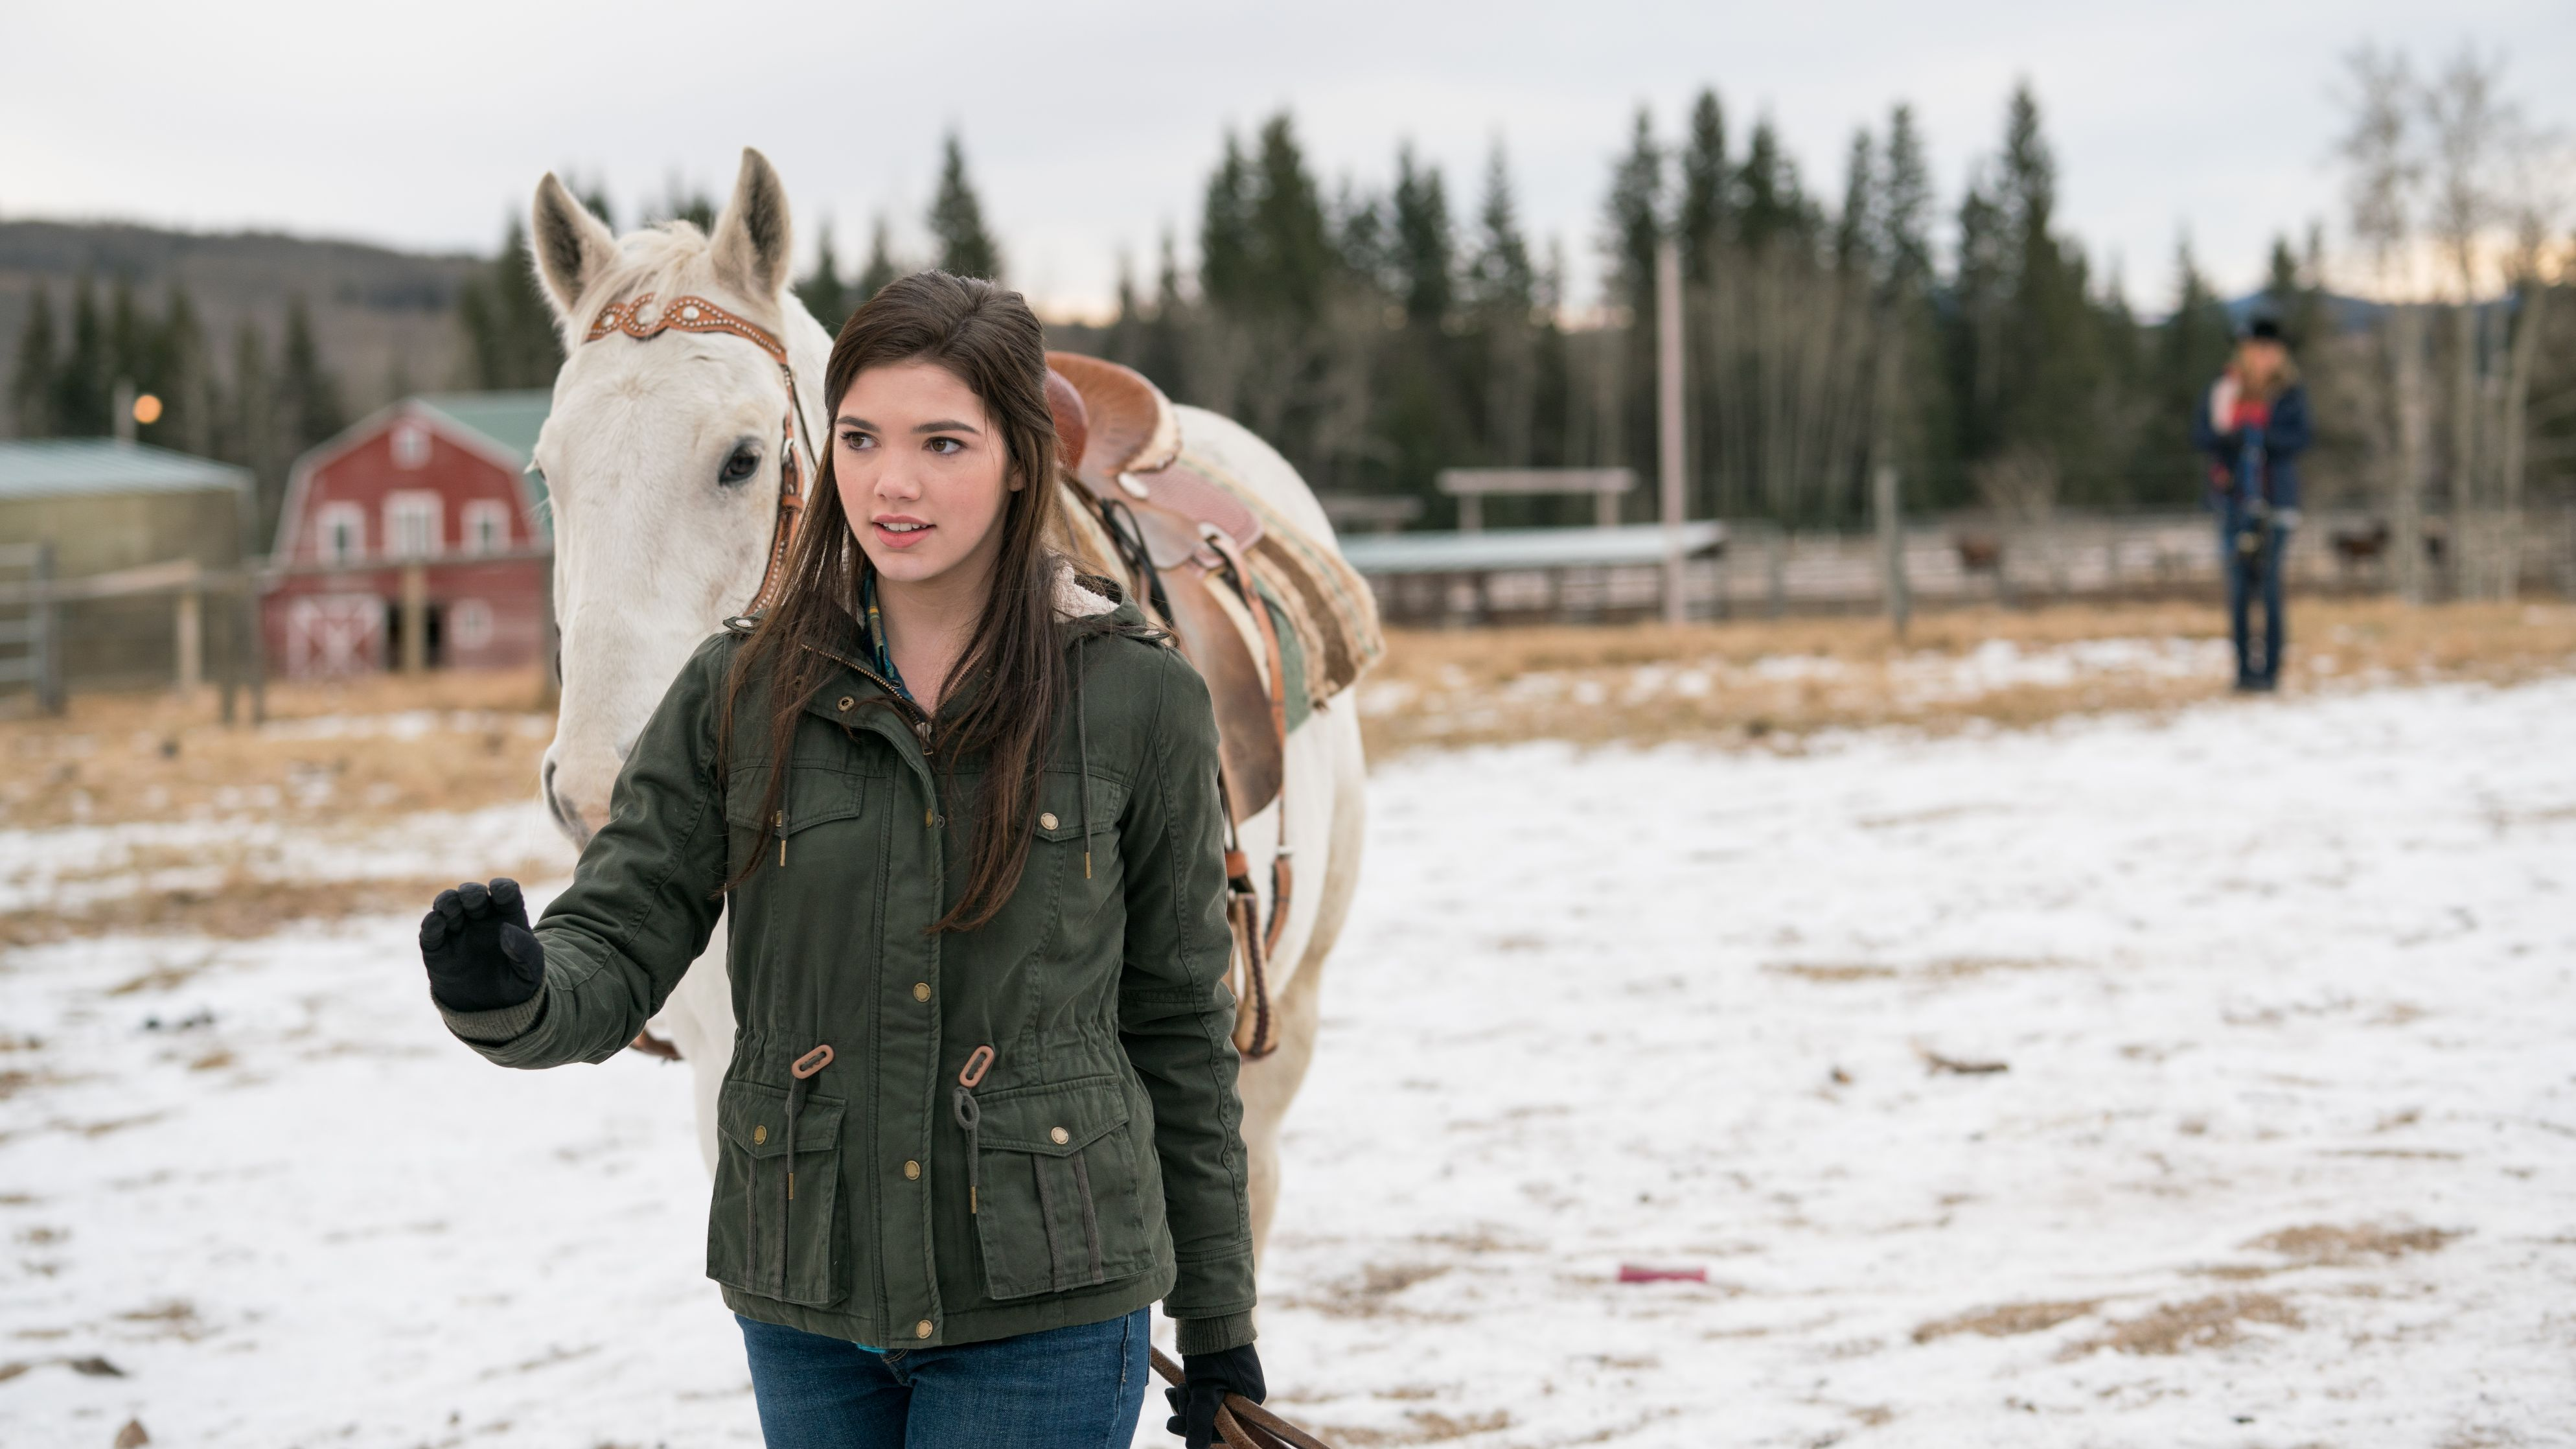 Heartland on UP: Cancelled or Season 11? (Release Date